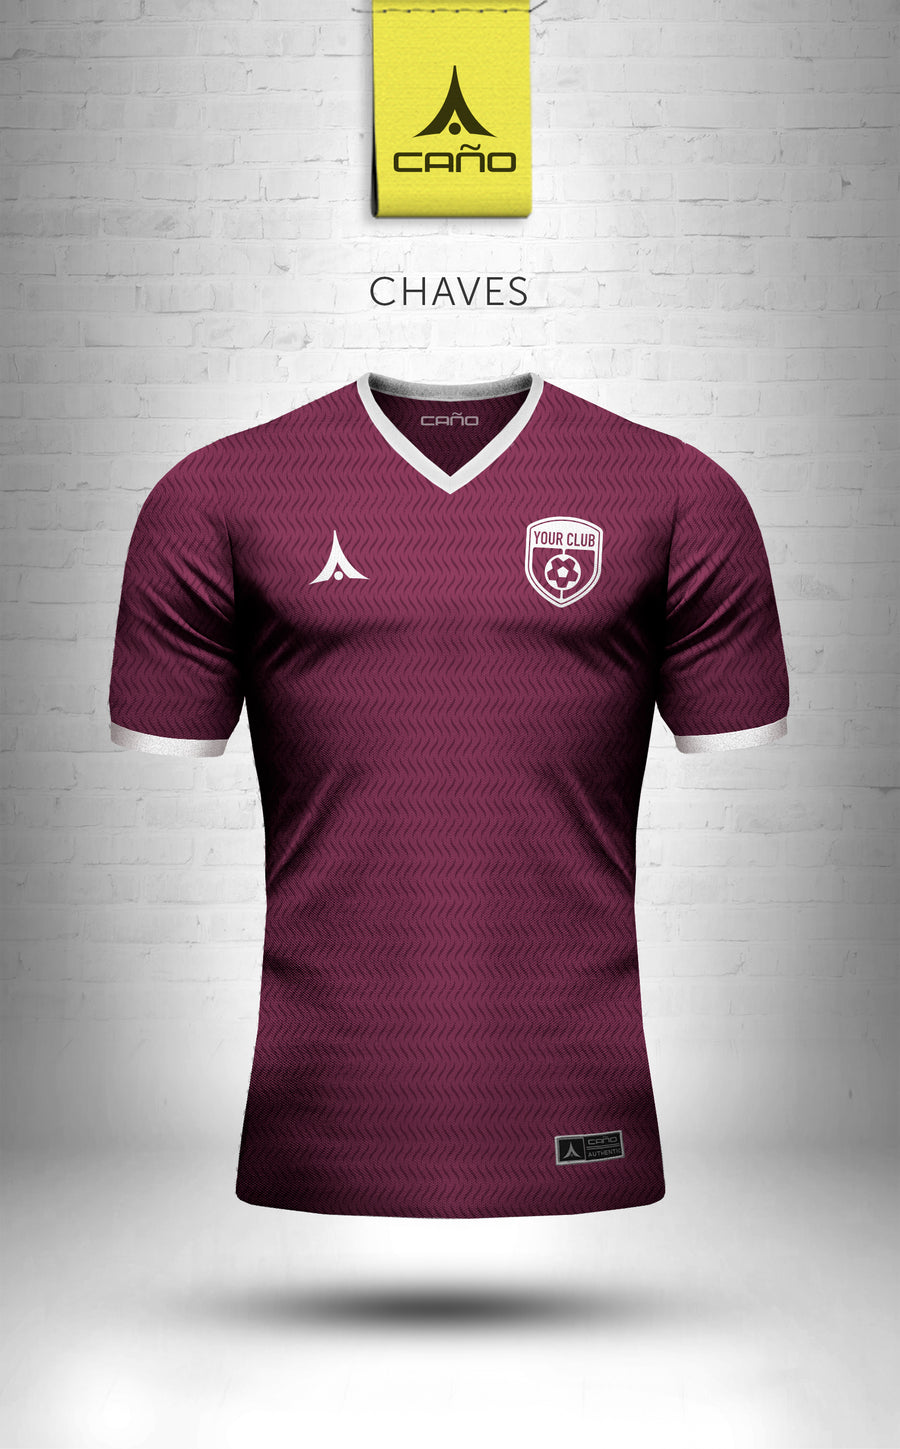 Chaves in maroon/white